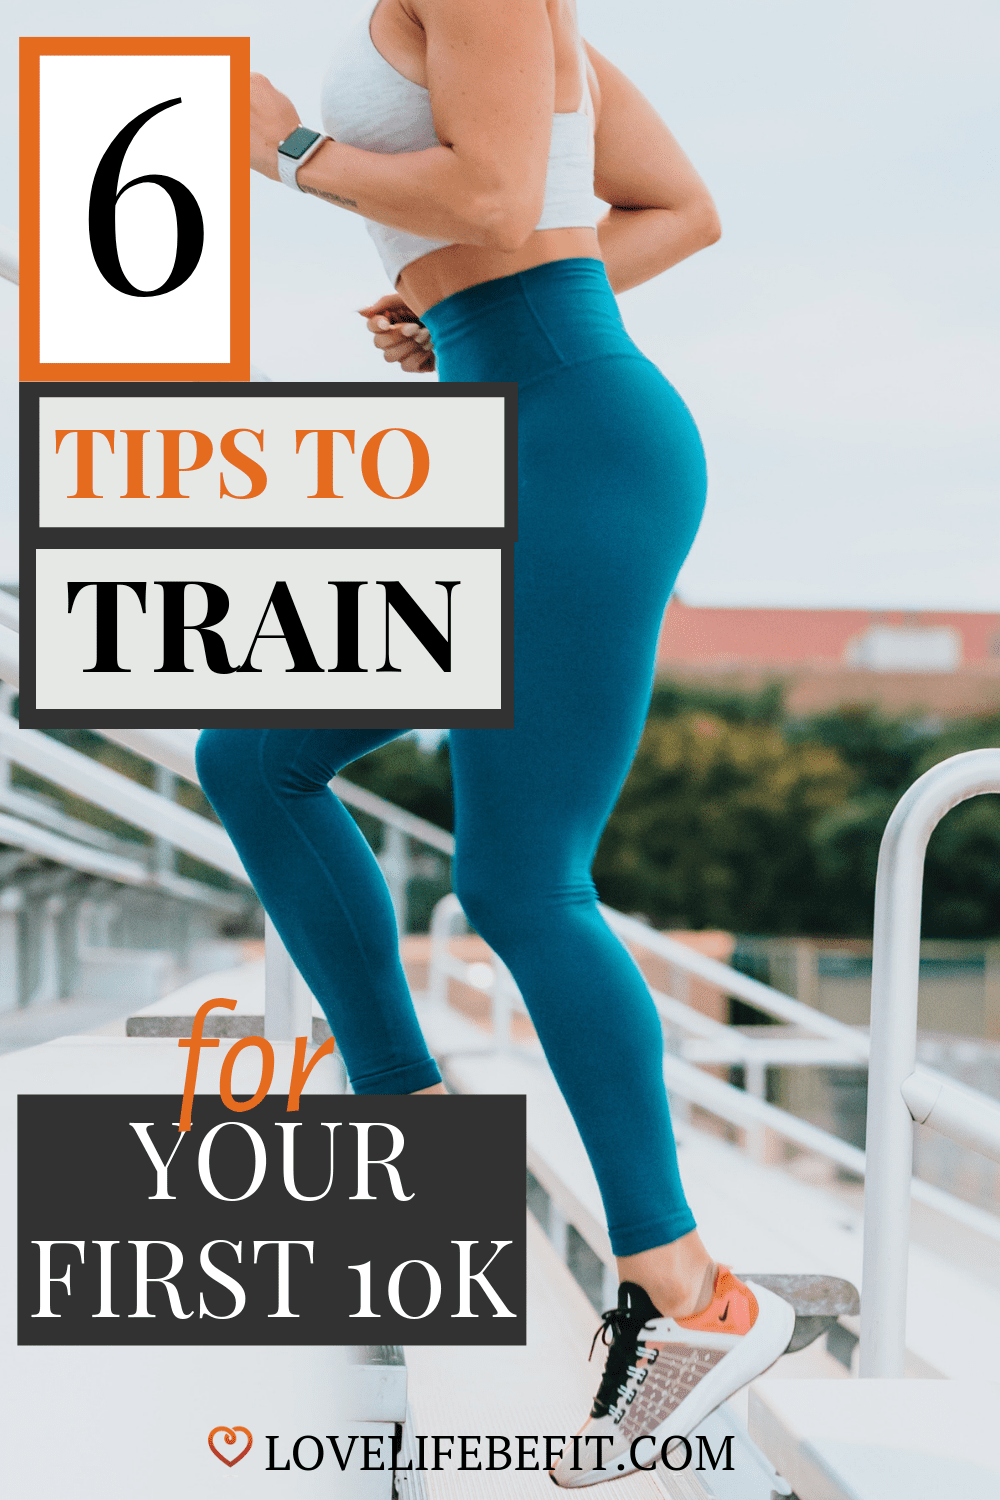 For a beginner runner, 10K is an ideal distance. It\'s far enough to be a challenge, without destroying you before you even get to the start line. A 10K is a fun mix of speed and endurance. Follow these tips to get the most out of your training...#running